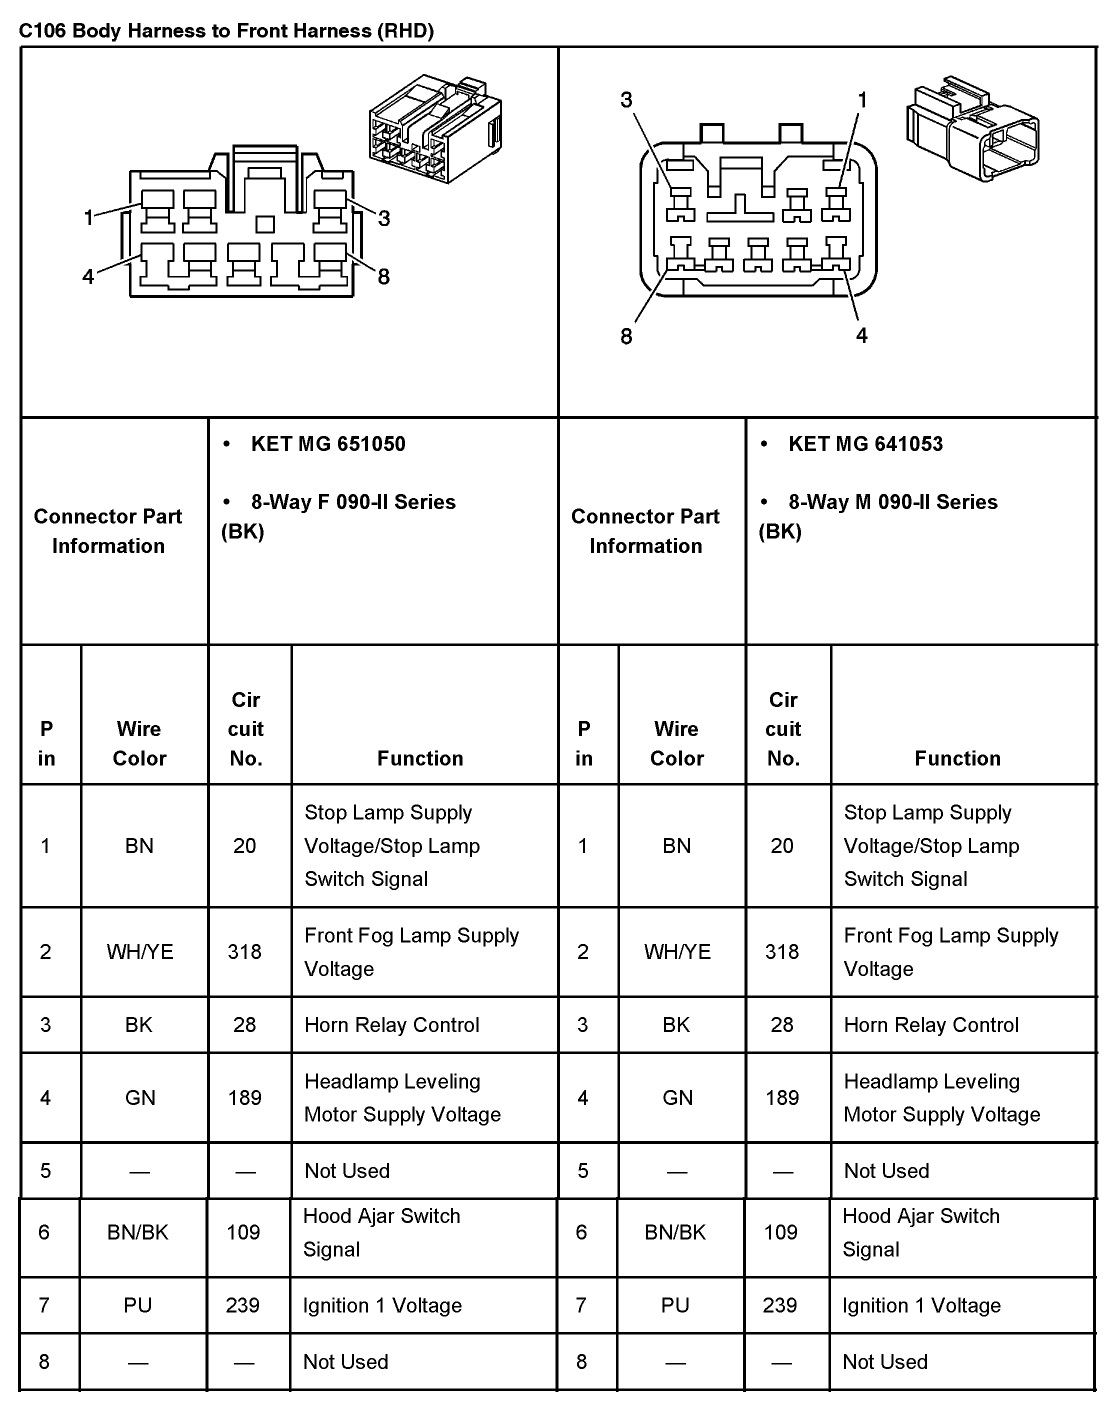 7331d1383704576 2005 aveo master connector list diagrams conn3 jpg 2005 aveo master connector list and diagrams Chevy Engine Number Search at virtualis.co